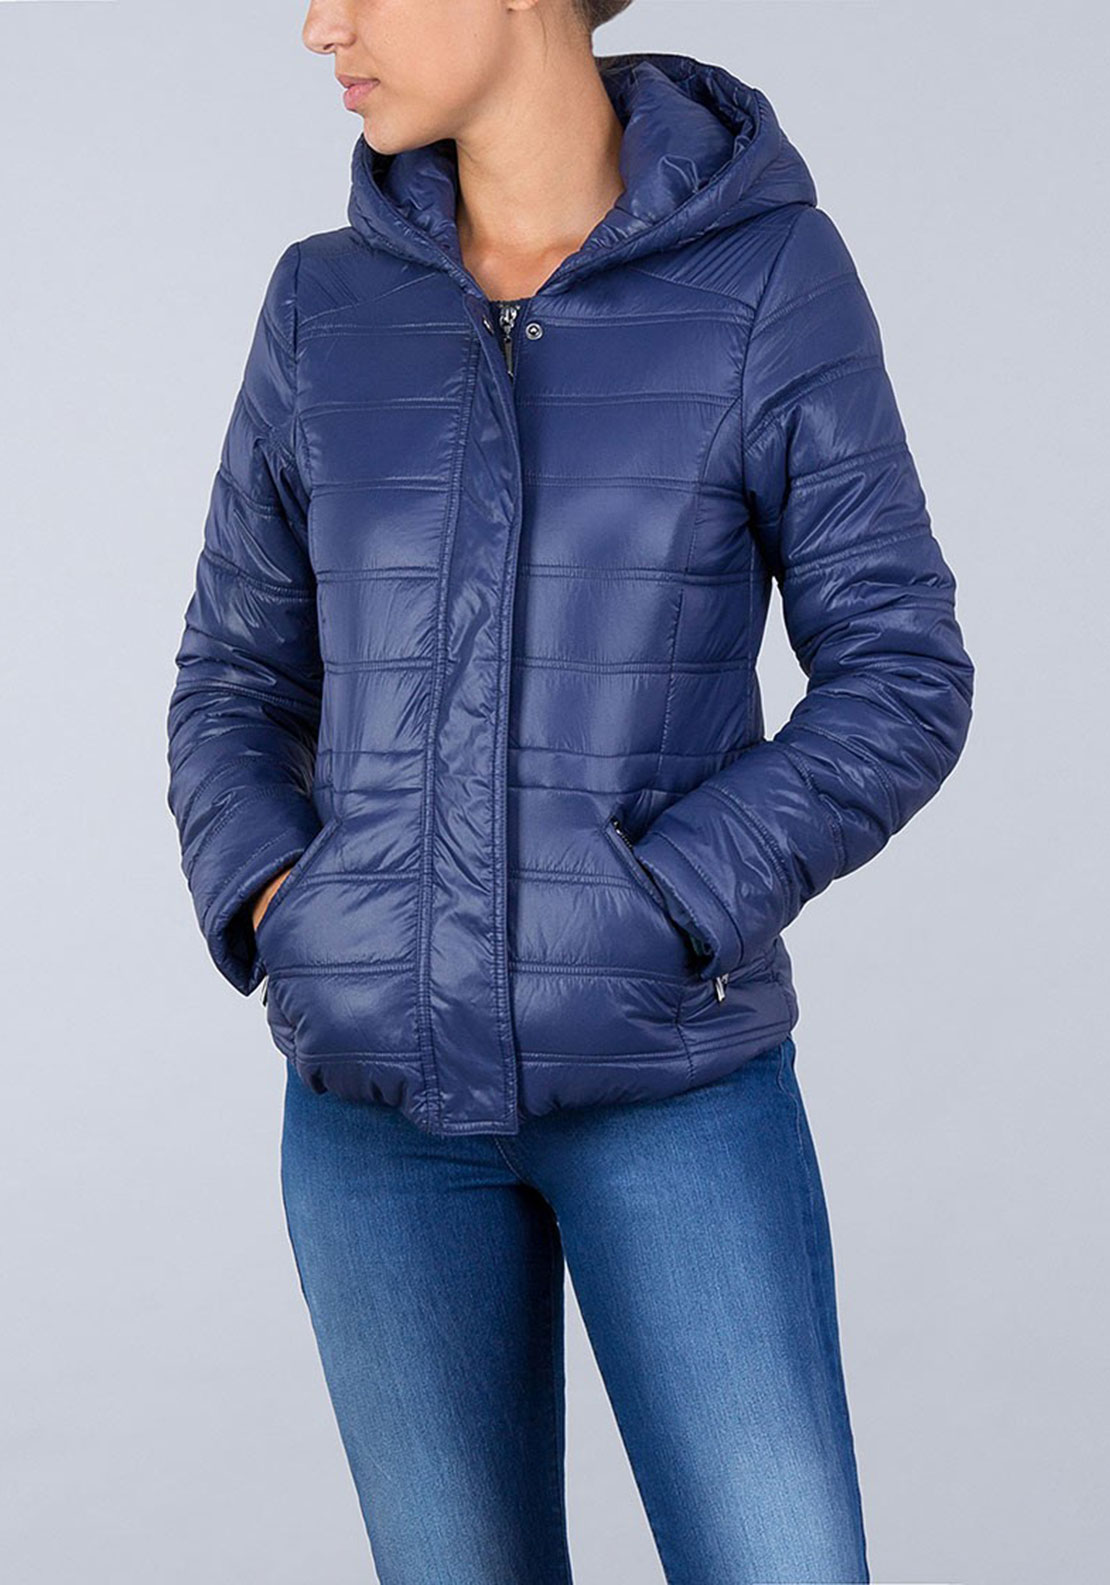 Tiffosi Womens Latoya Padded Jacket, Dark Blue